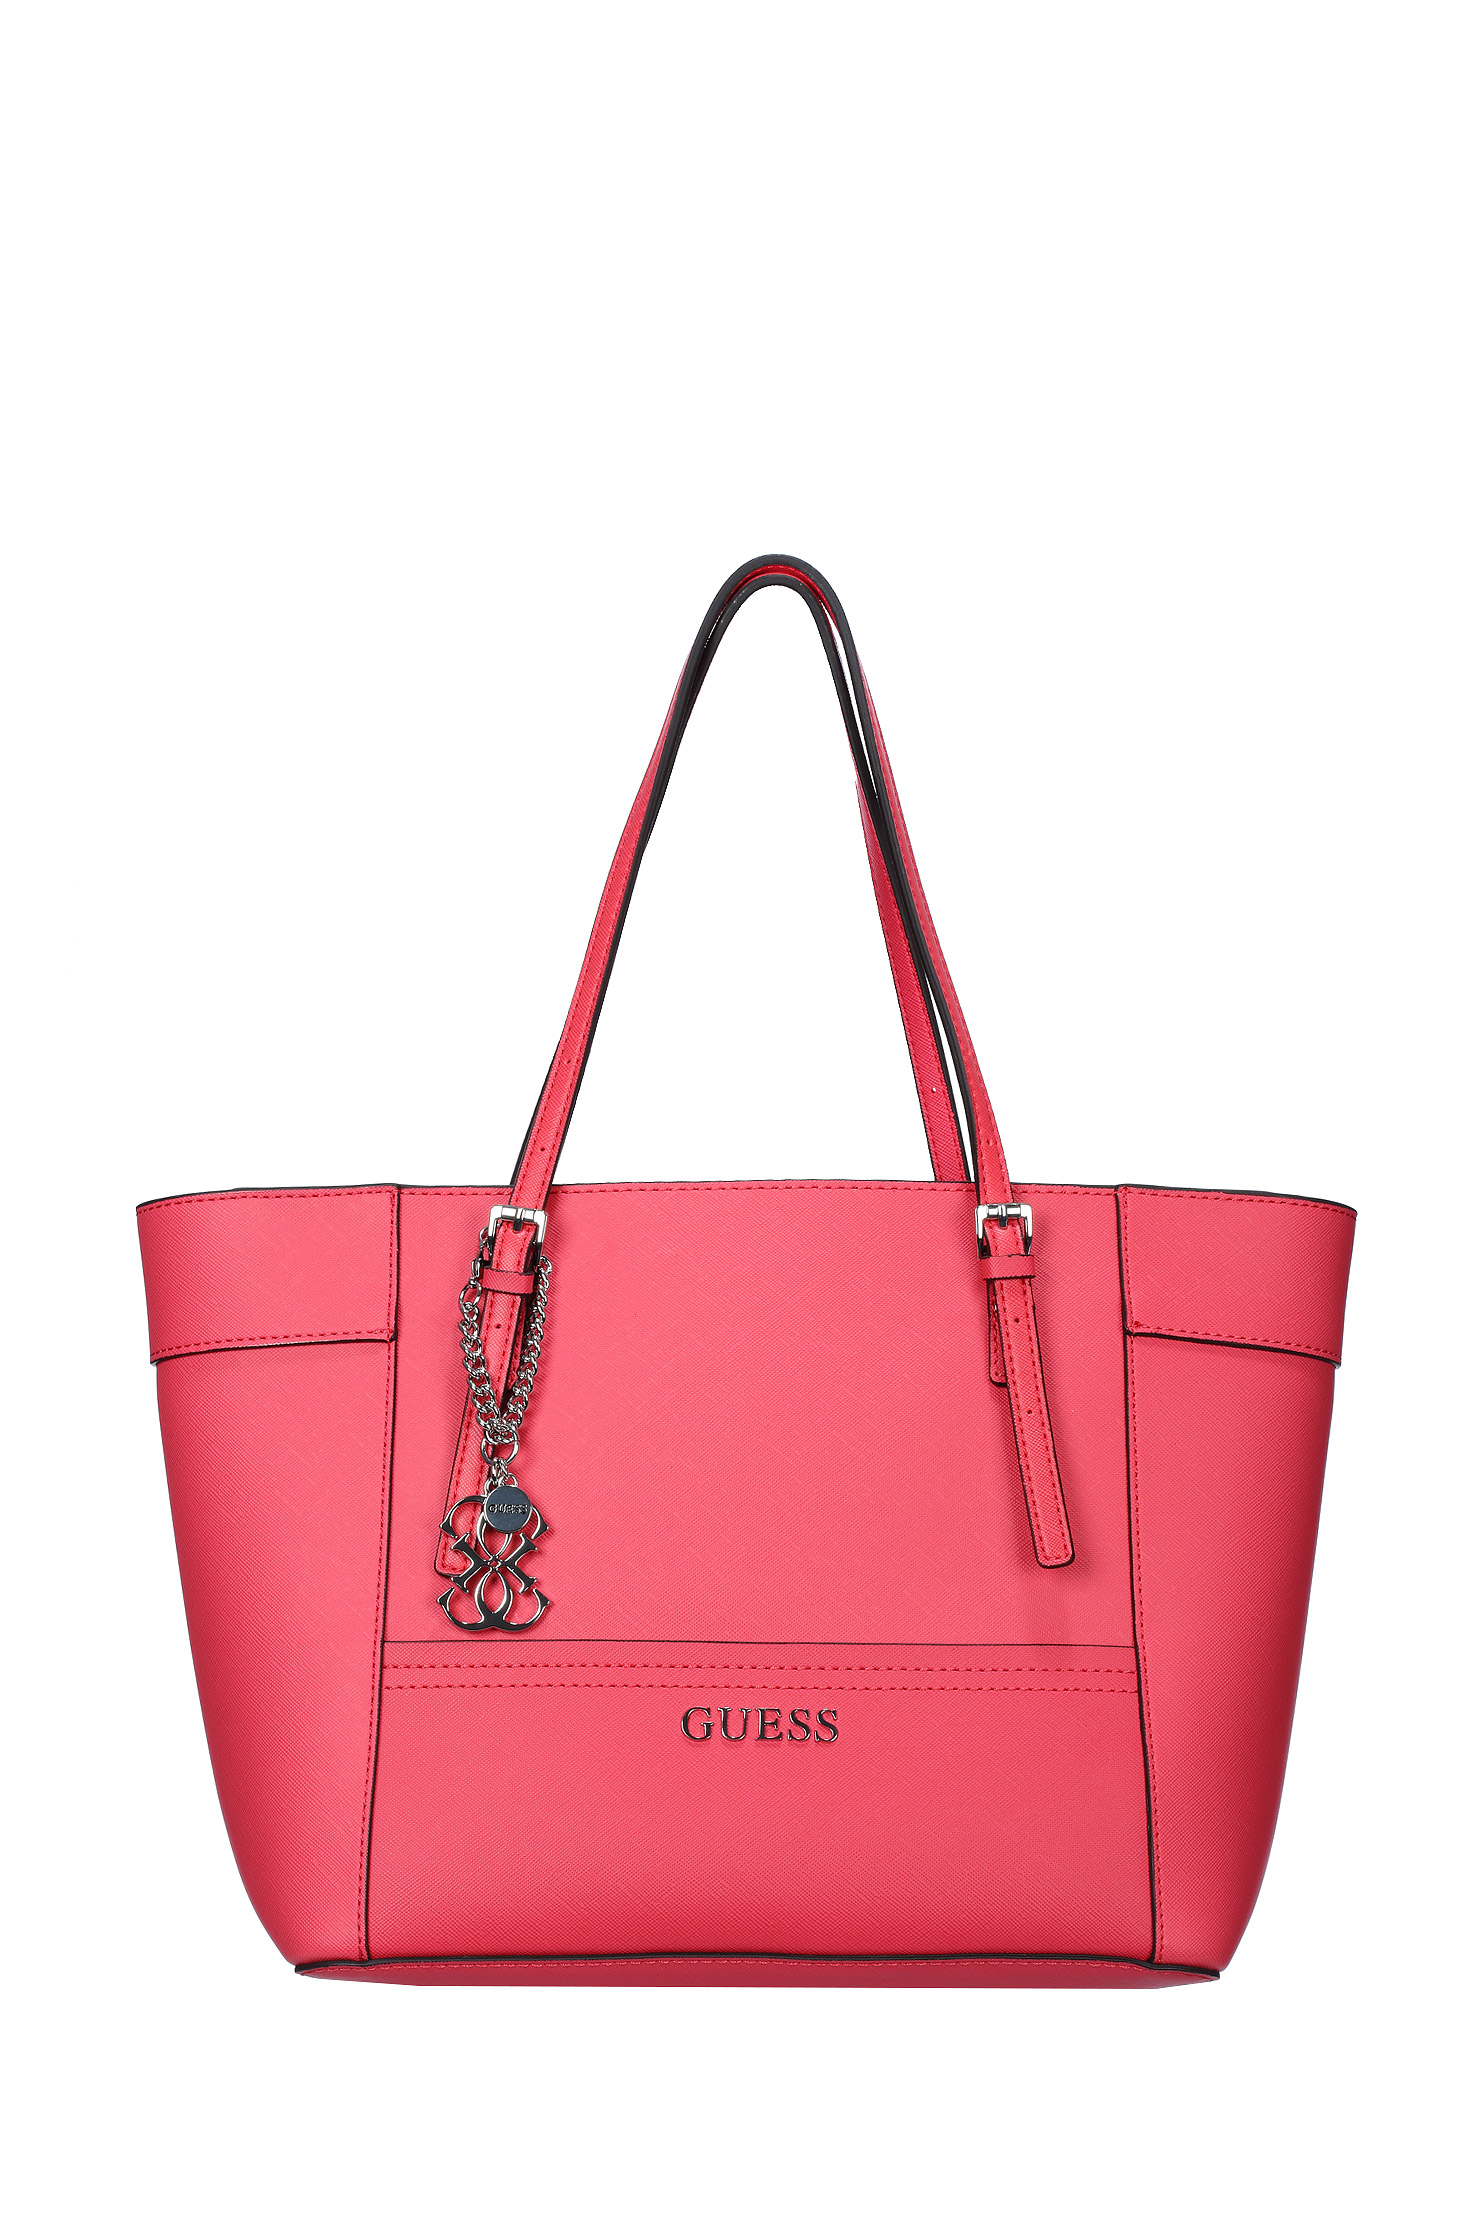 Guess Luggage Pink | Luggage And Suitcases